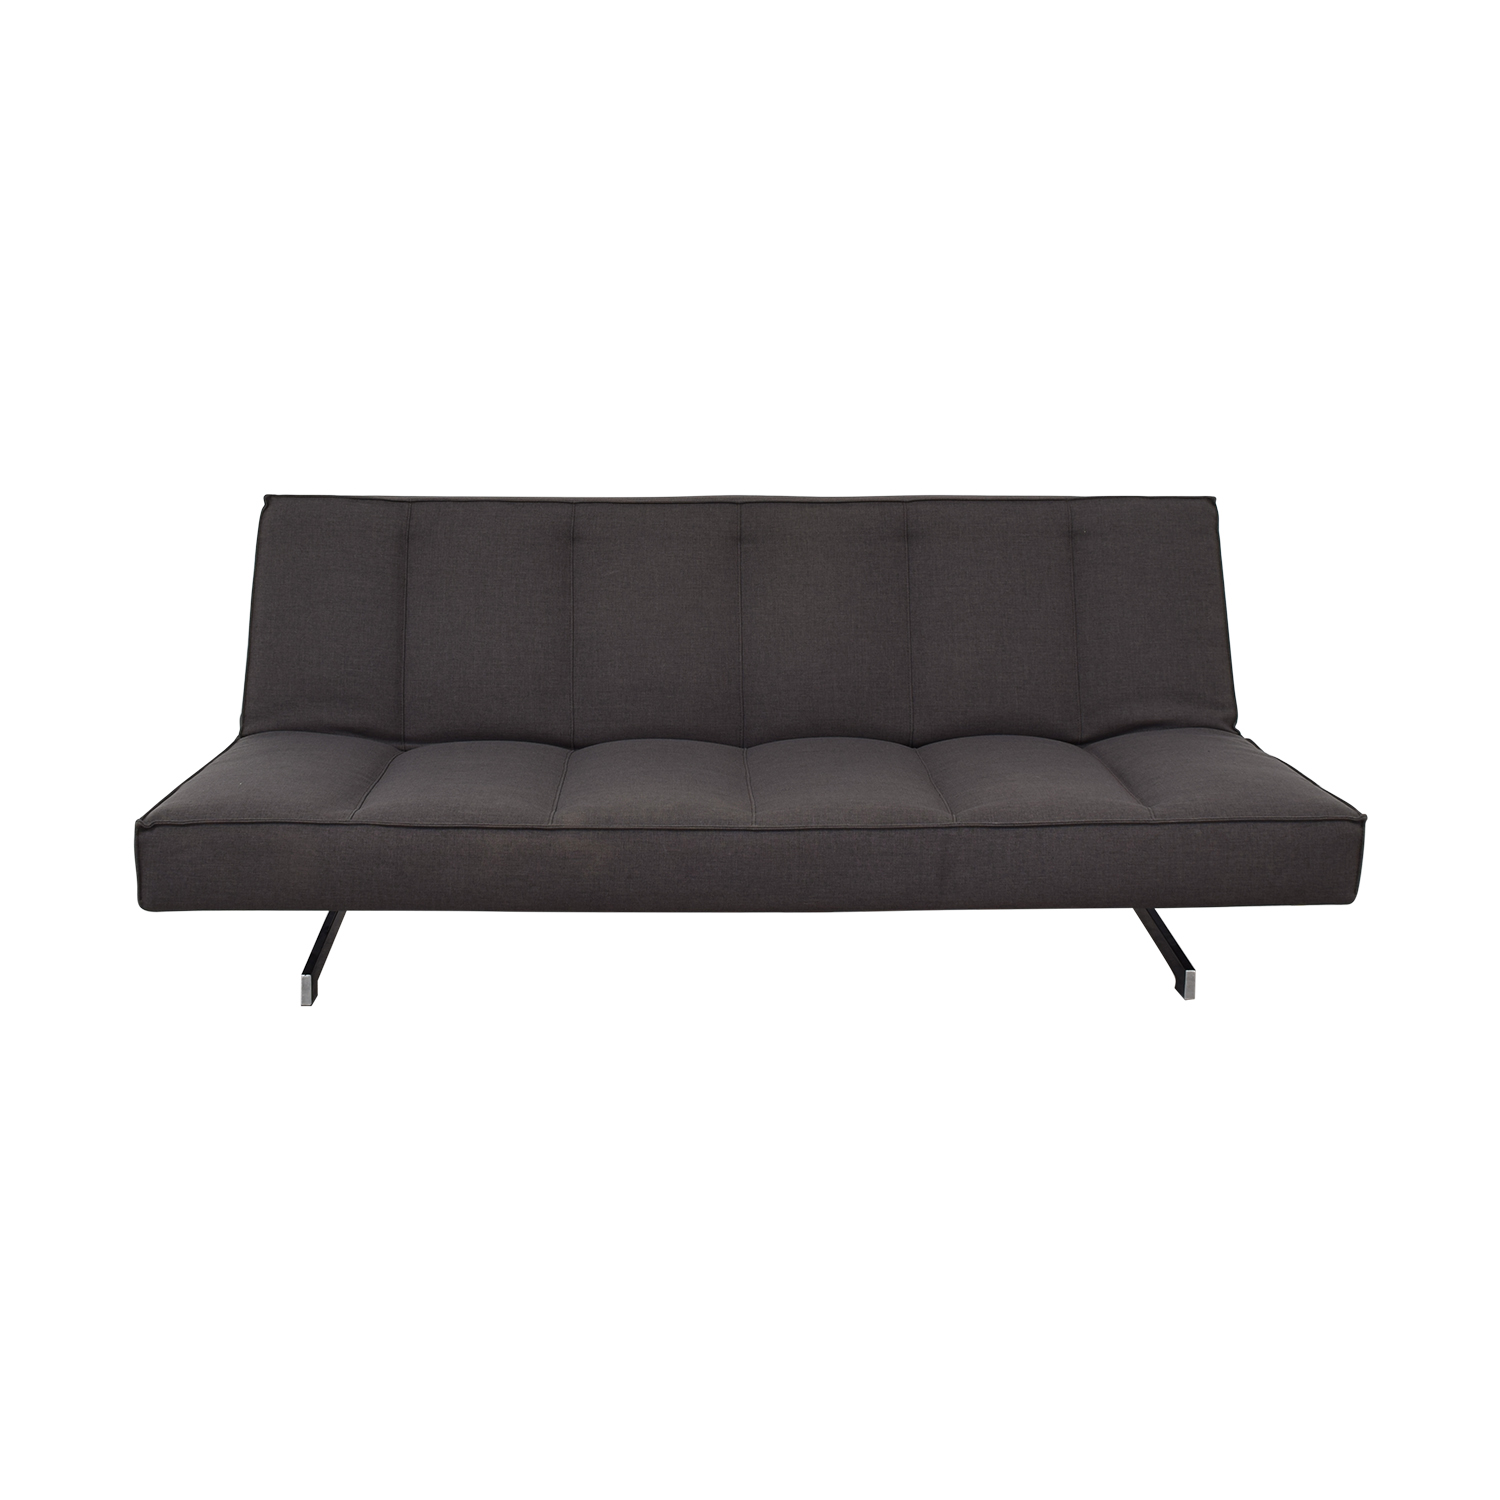 Innovation Living Innovation Living Futon Sofa